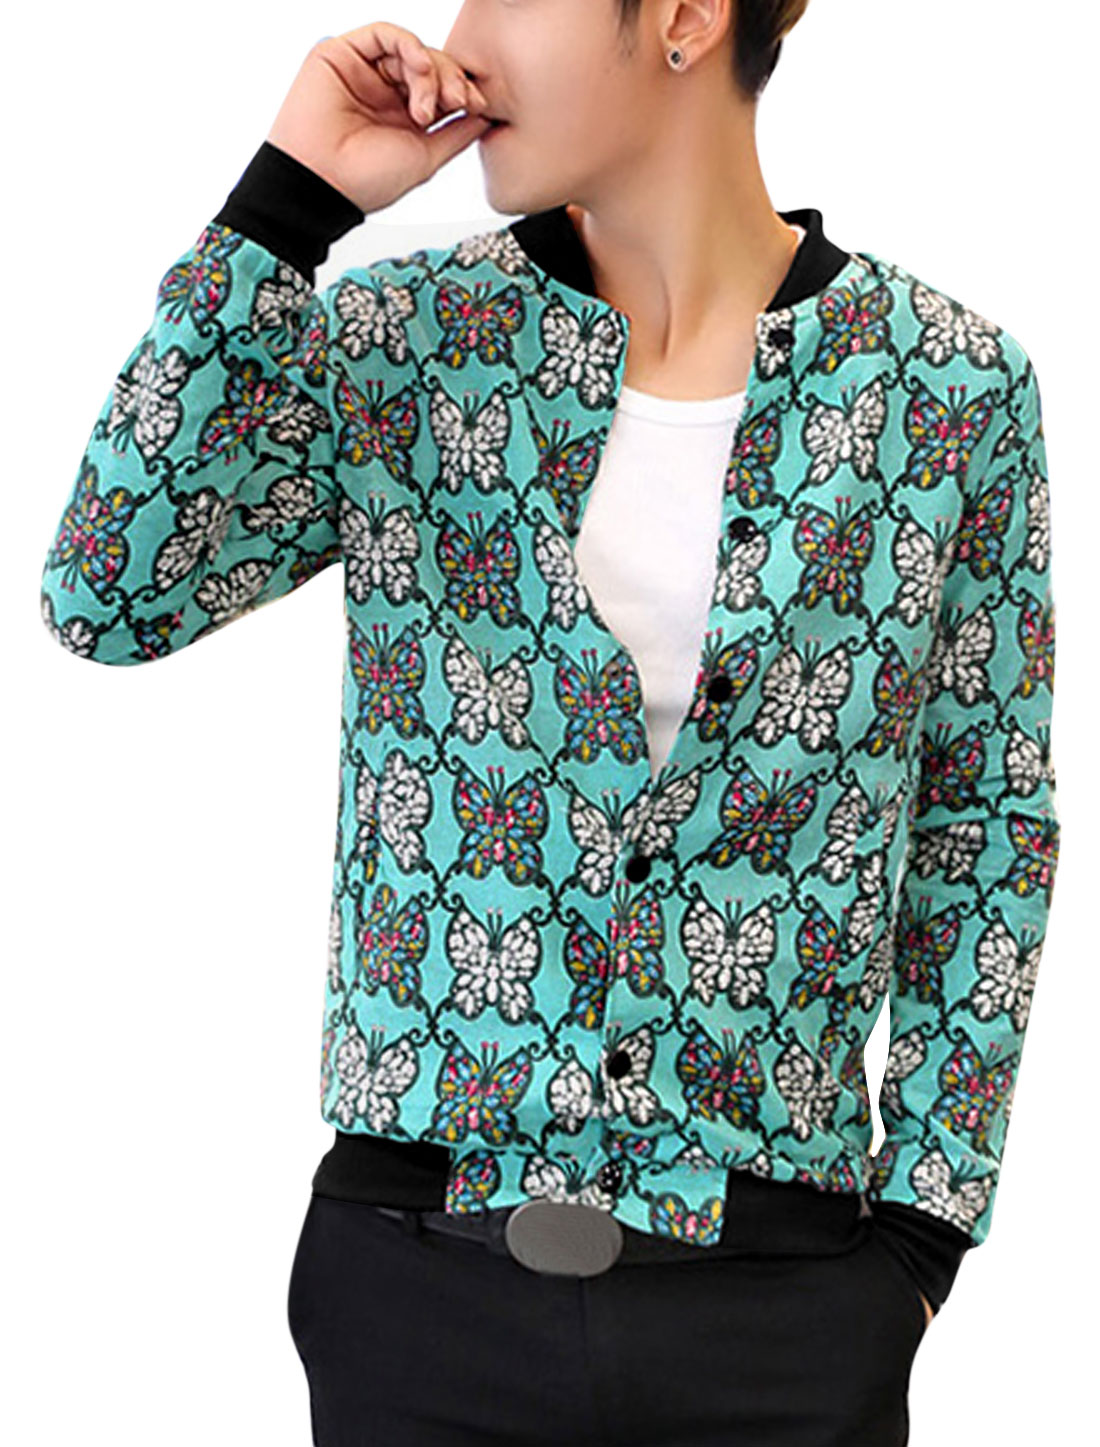 Men Long Sleeves Ribbed Trim Allover Butterfly Print Fashion Linen Jacket Teal M